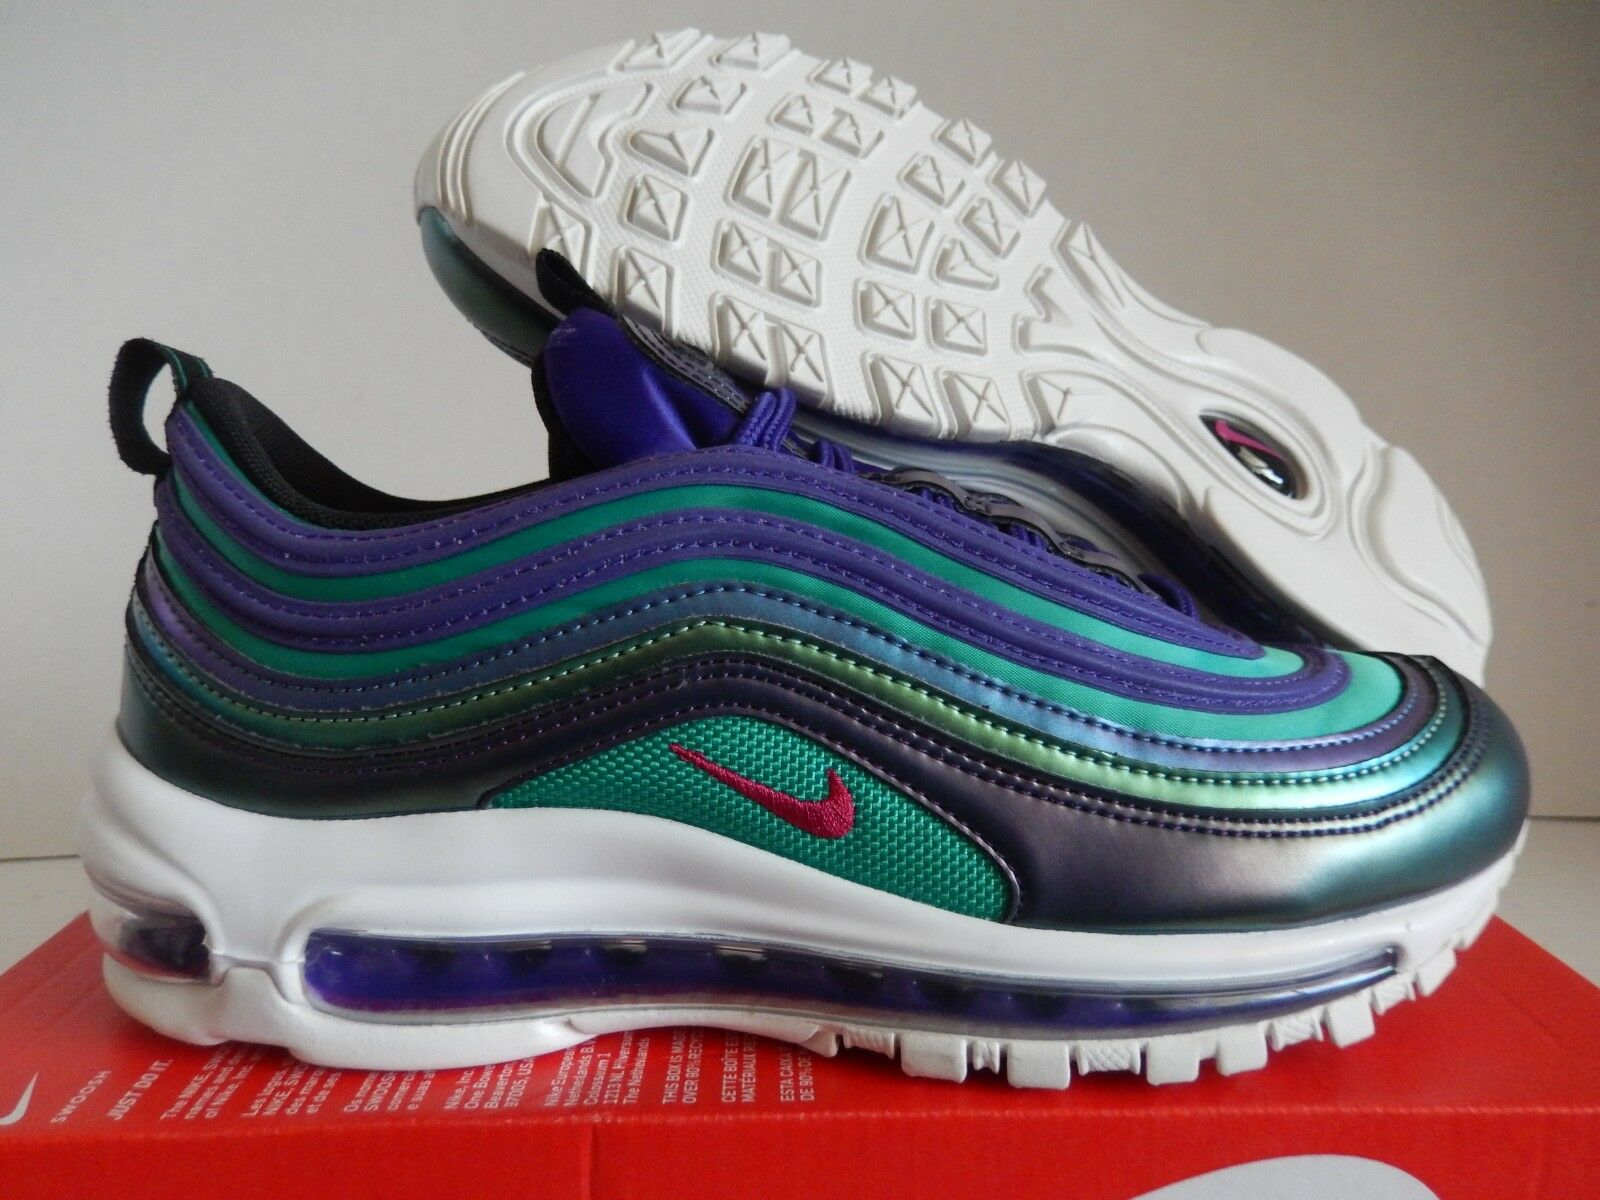 NIKE AIR MAX 97 SE (GS) COURT PURPLE-RUSH PINK SZ 5.5Y-WOMENS SZ 7 [AV3181-500]